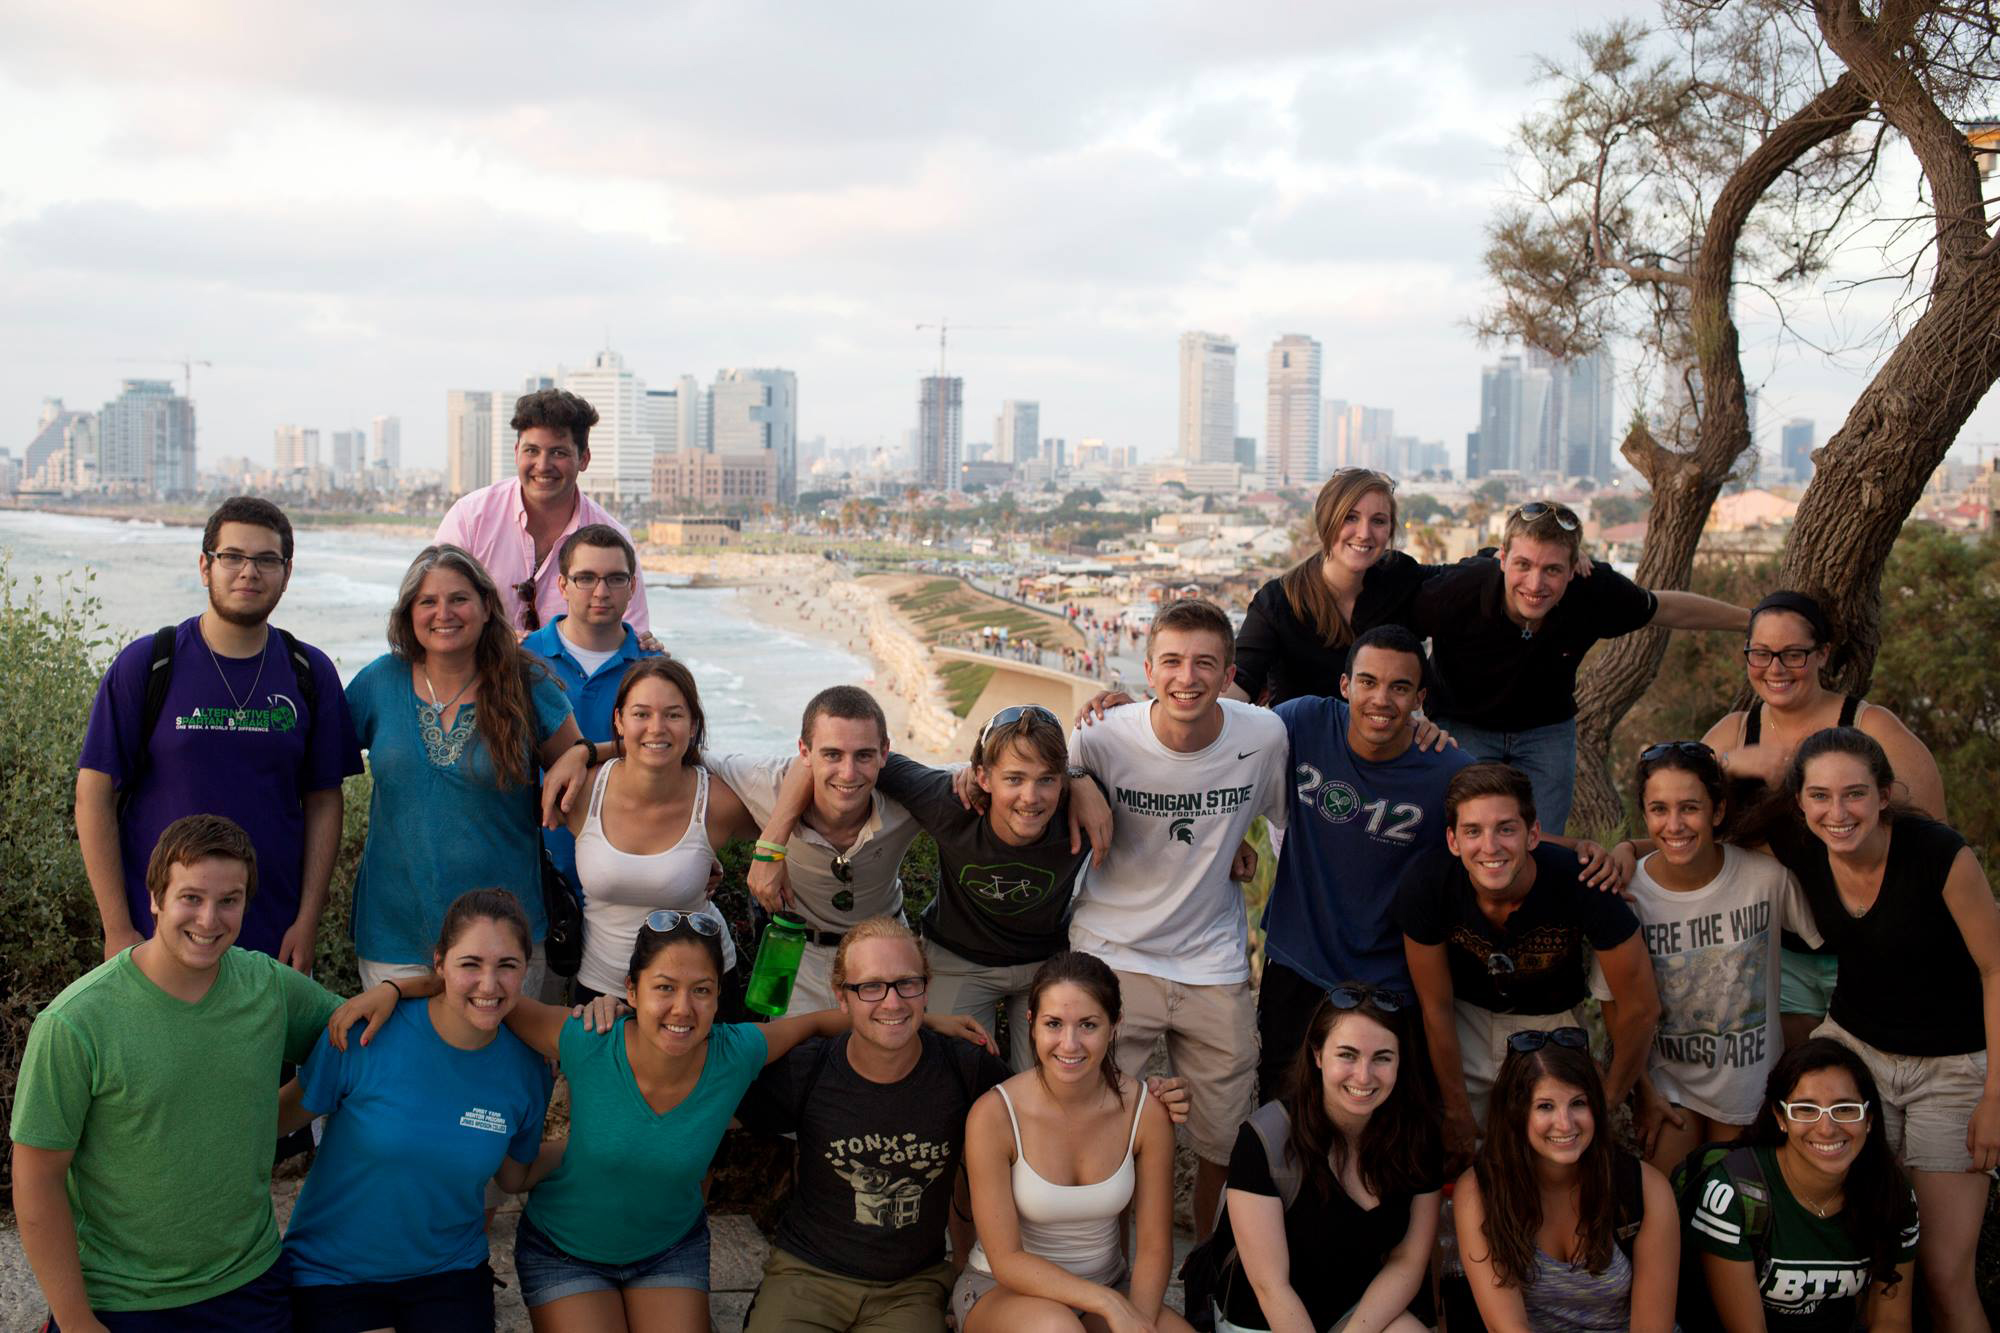 A diverse group of college students stand for a photo opportunity in Israel, the desert behind them.